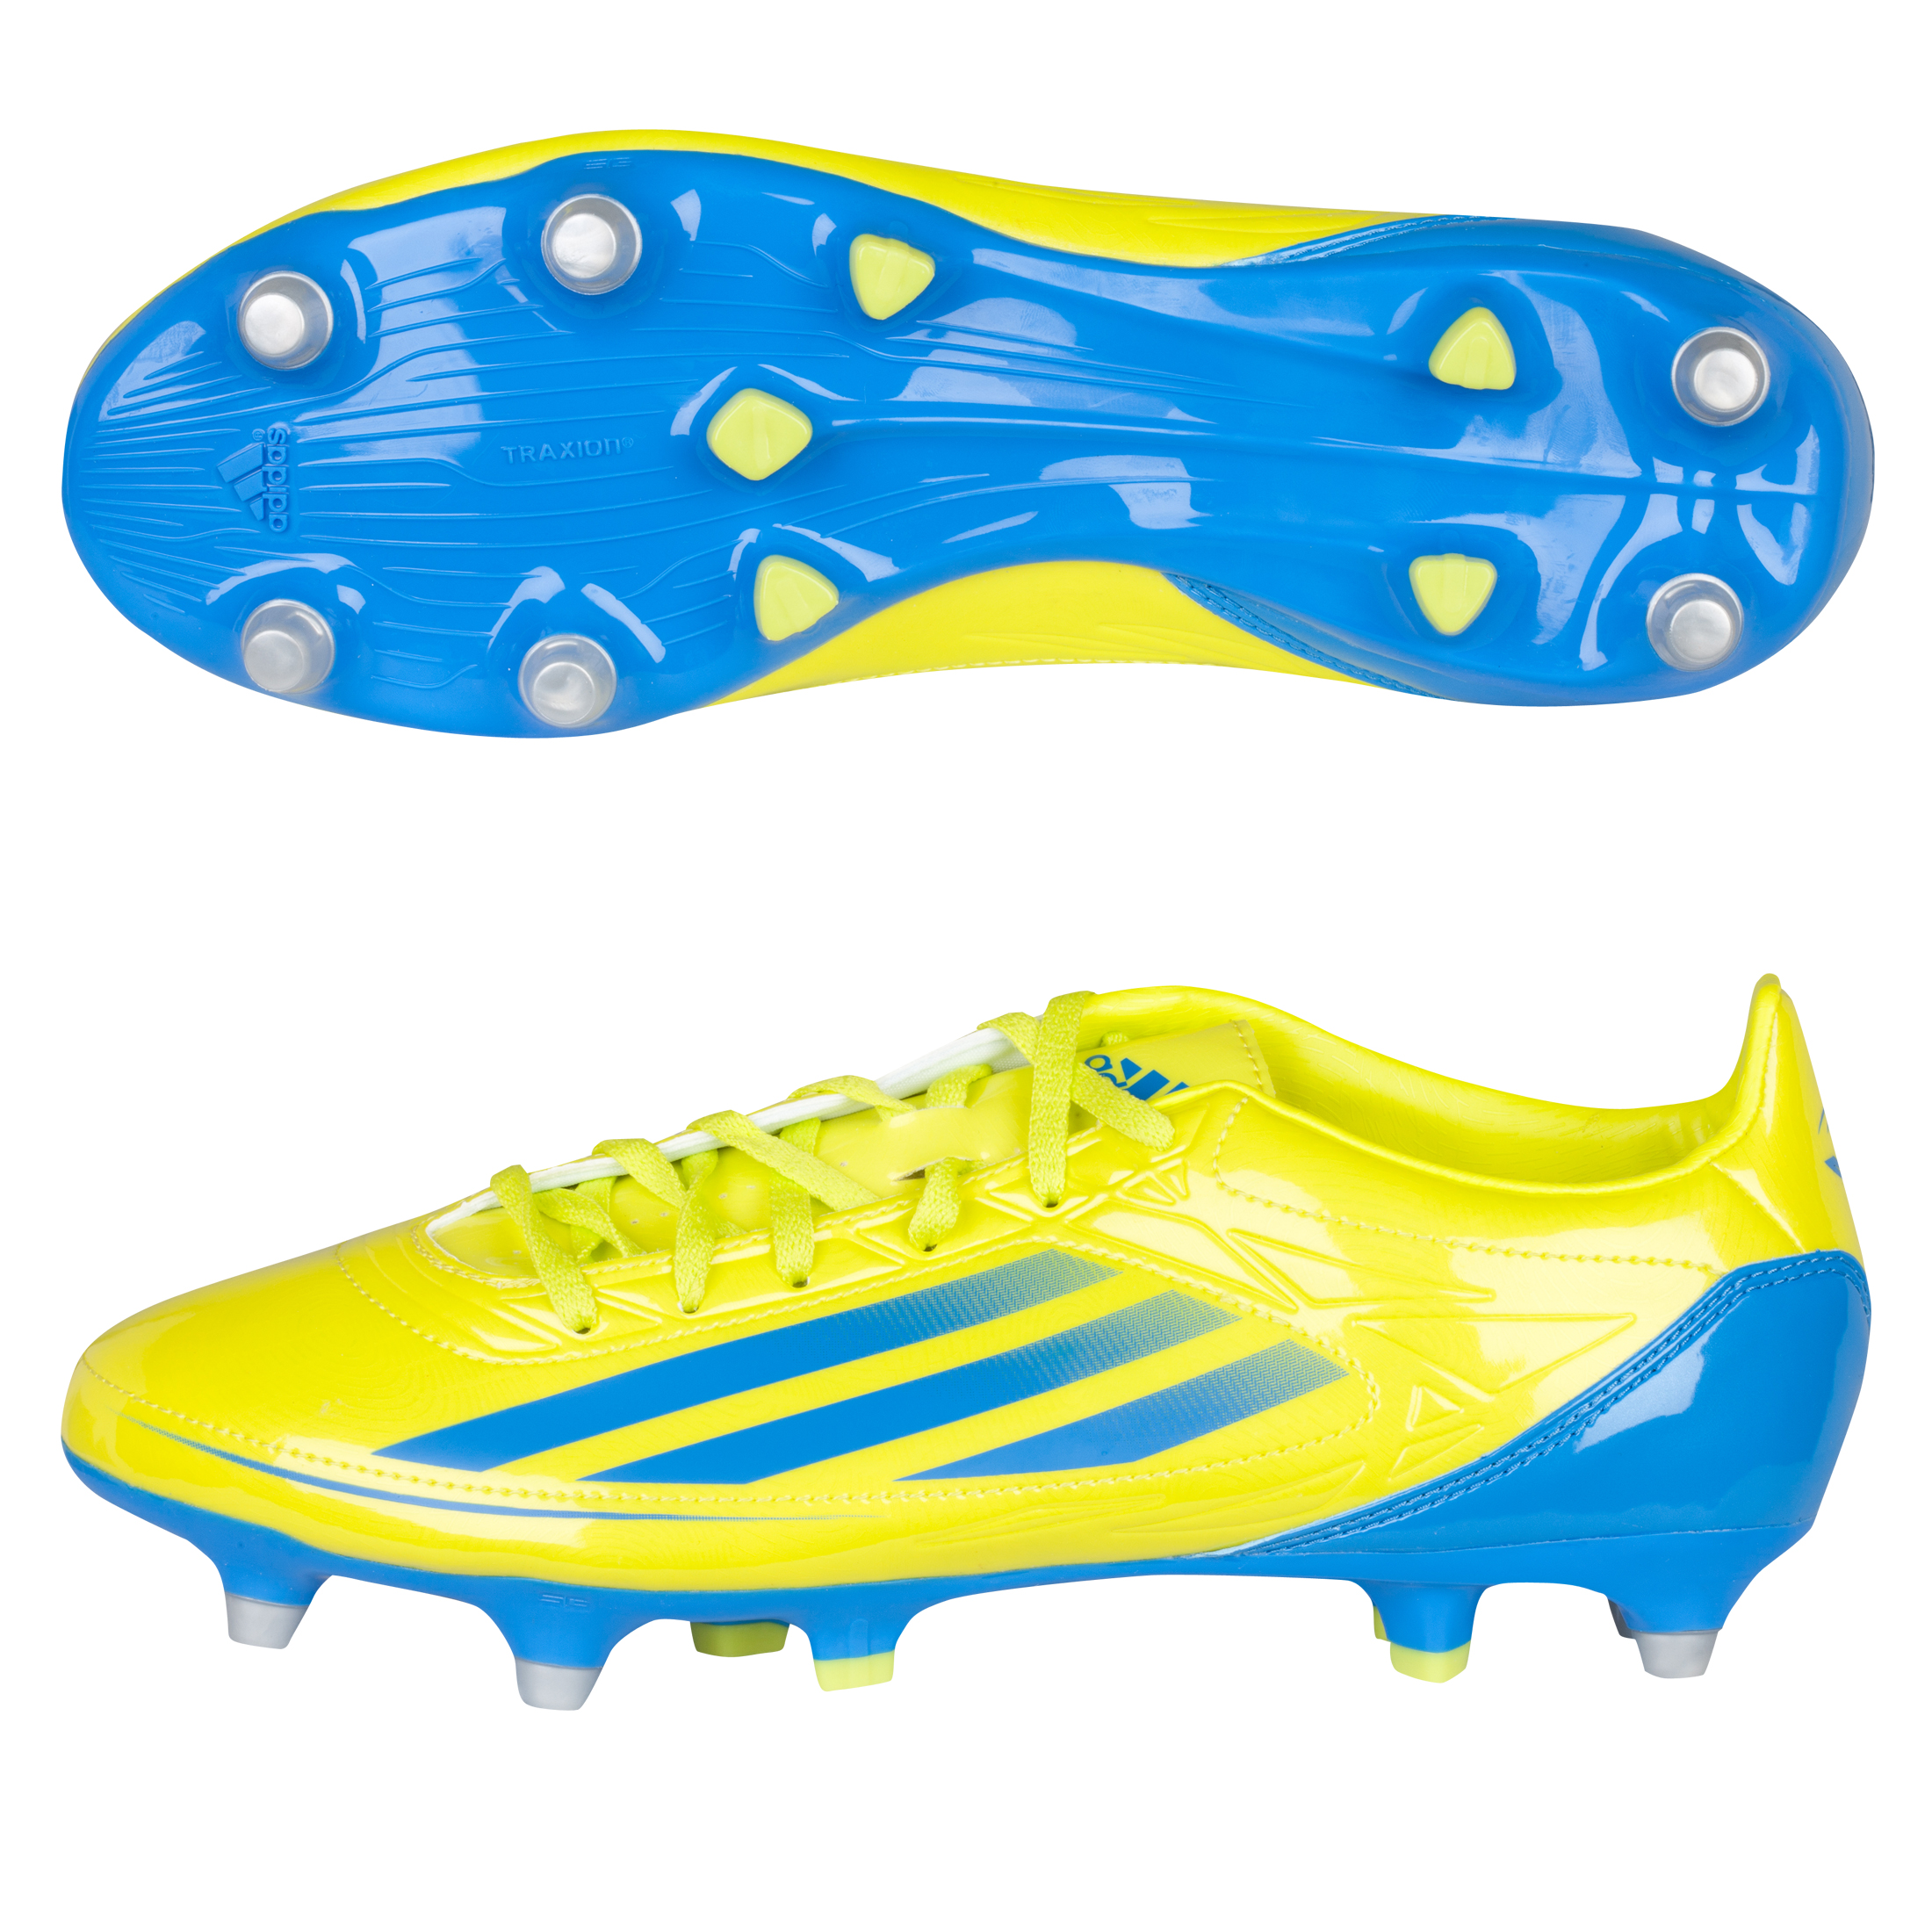 Adidas RS7 II TRX Soft Ground Rugby Boots - Lab Lime/Bright Blue